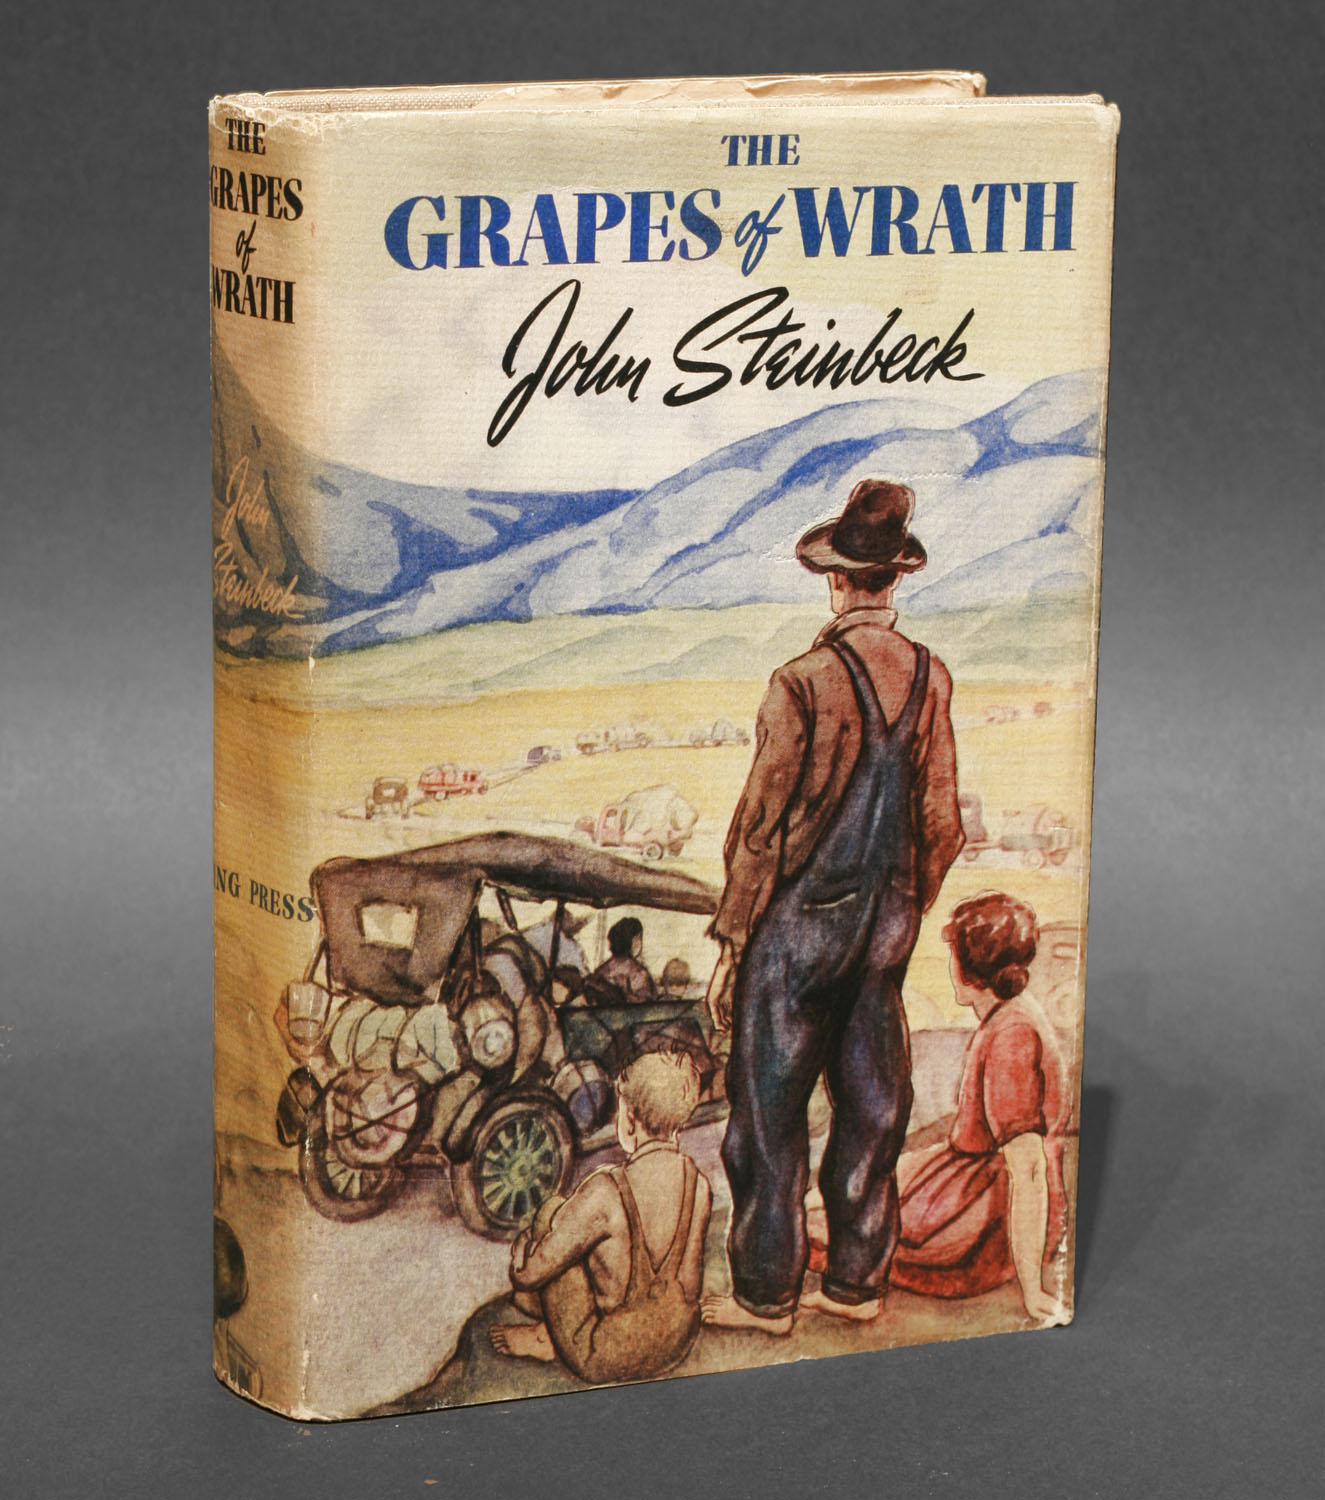 The migration and great depression in the movie the grapes of wrath